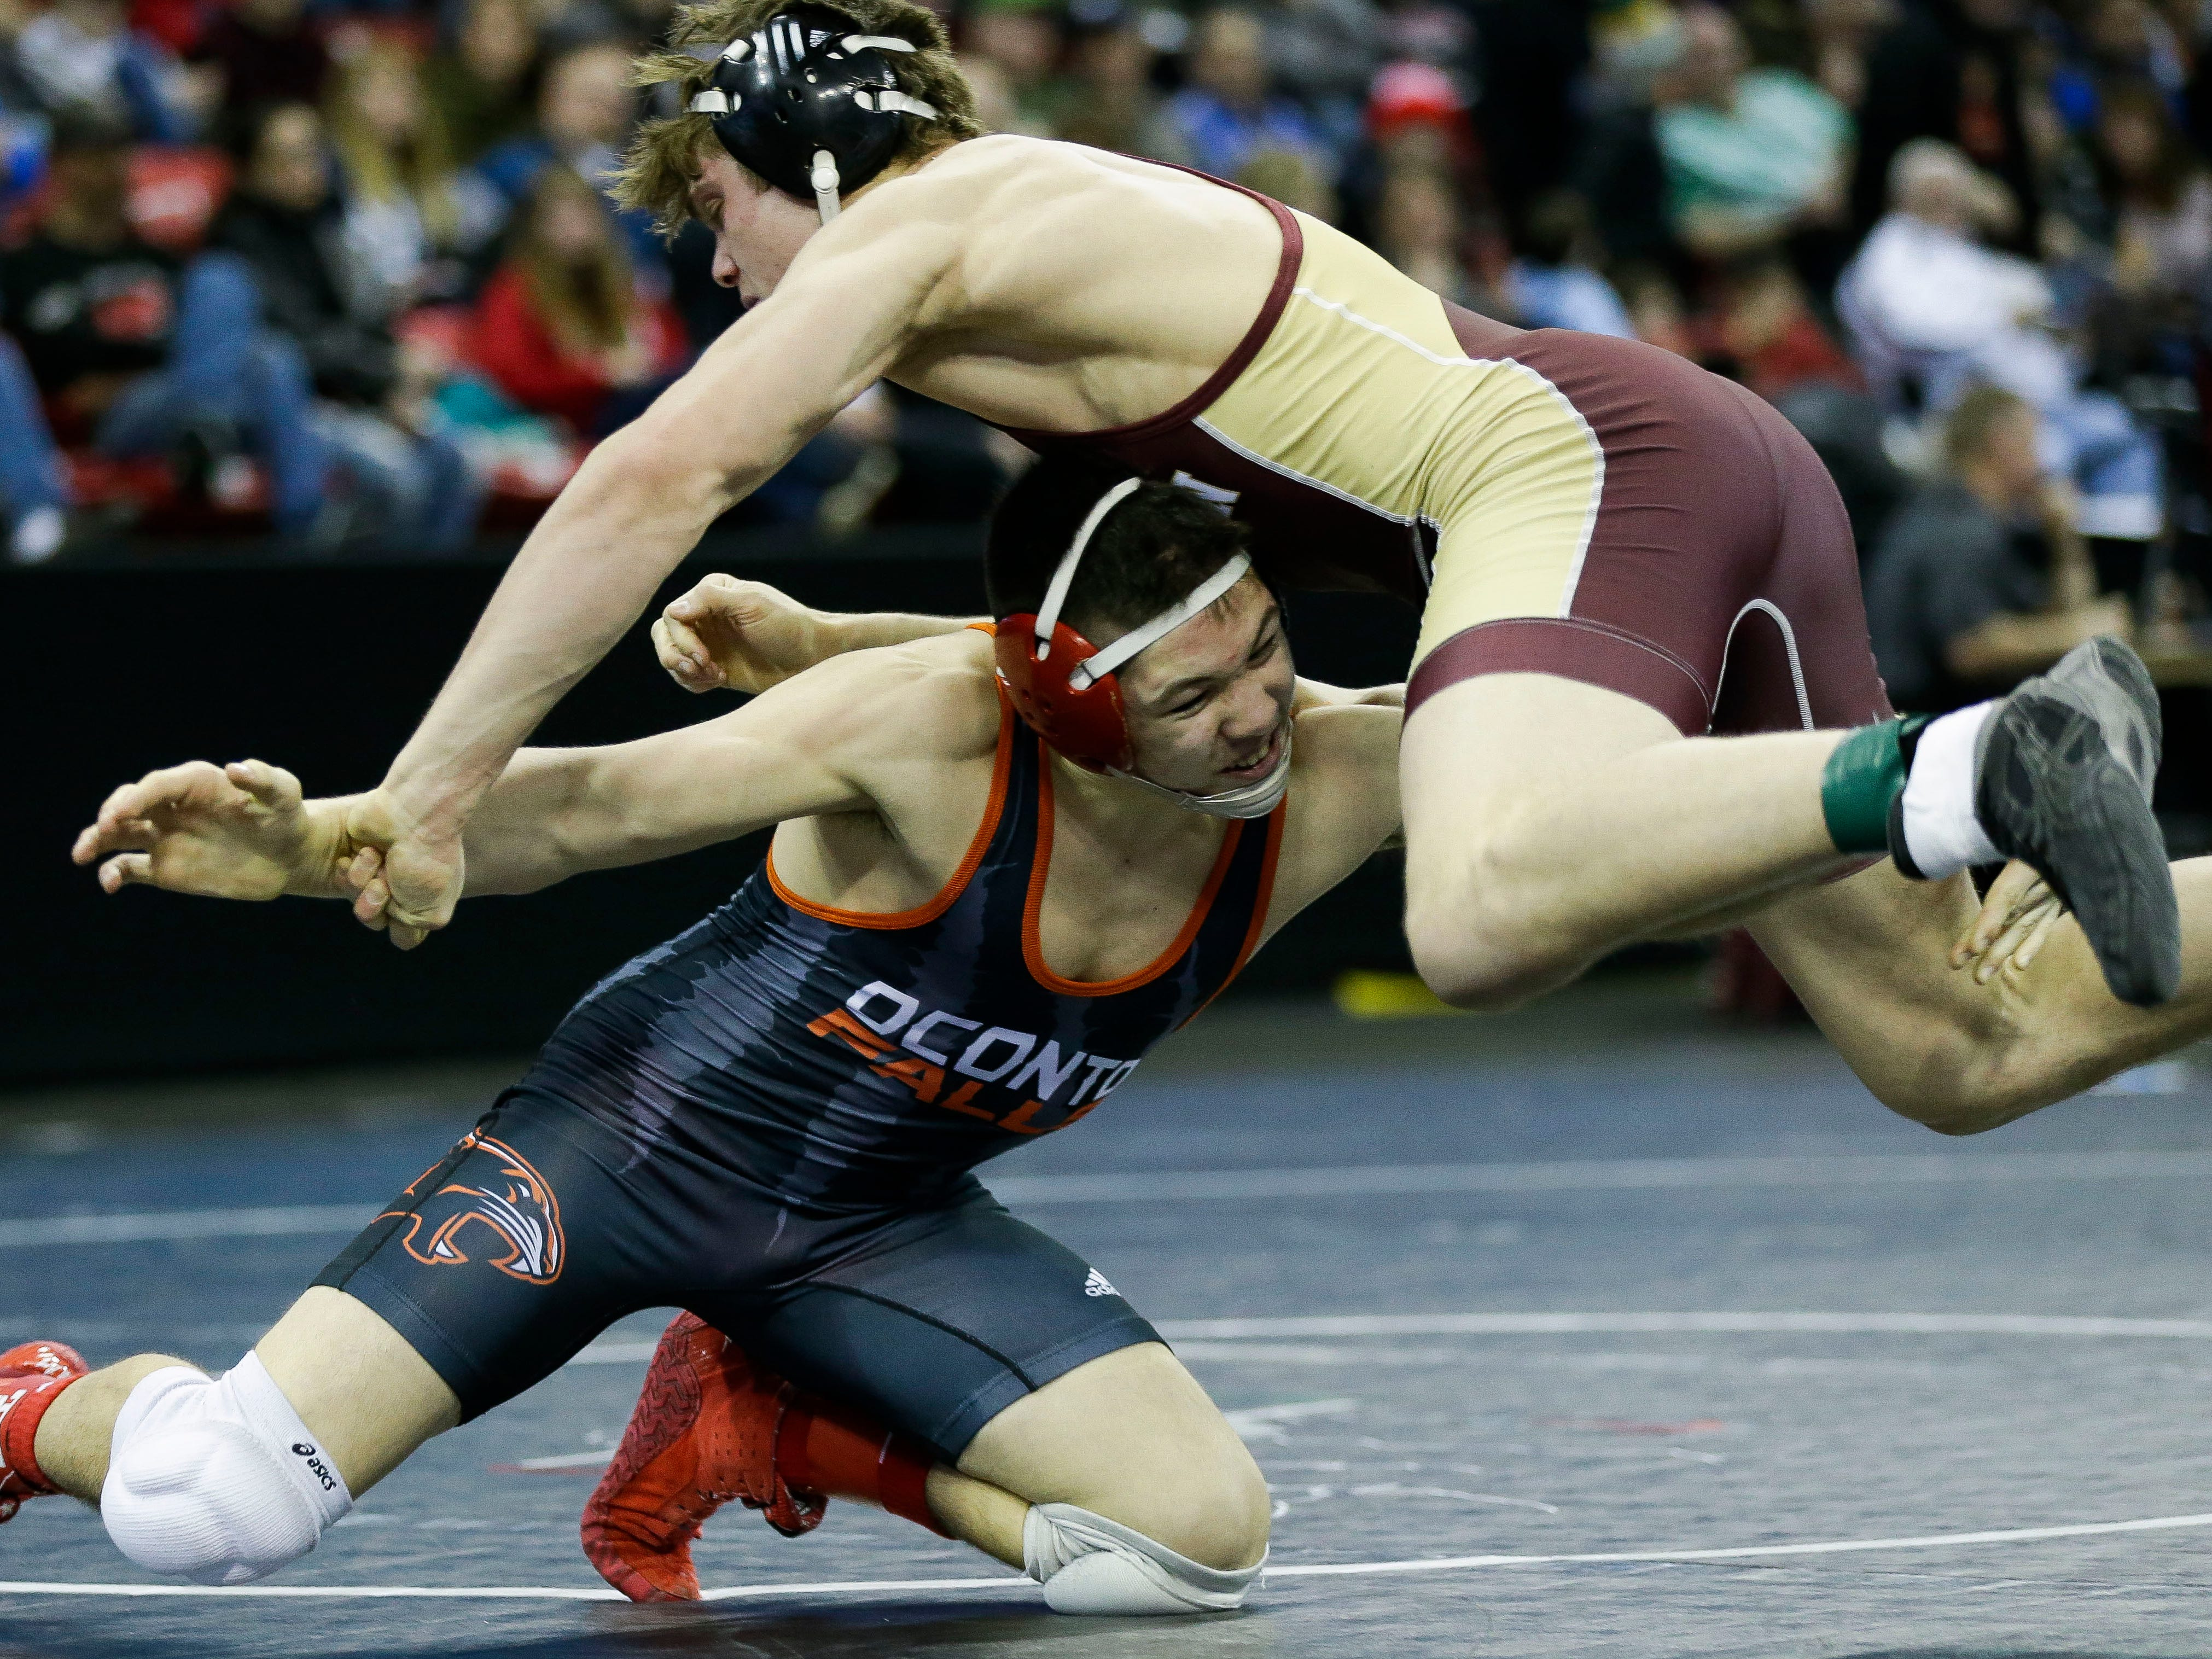 WIAA state wrestling: Day 3 results from Madison